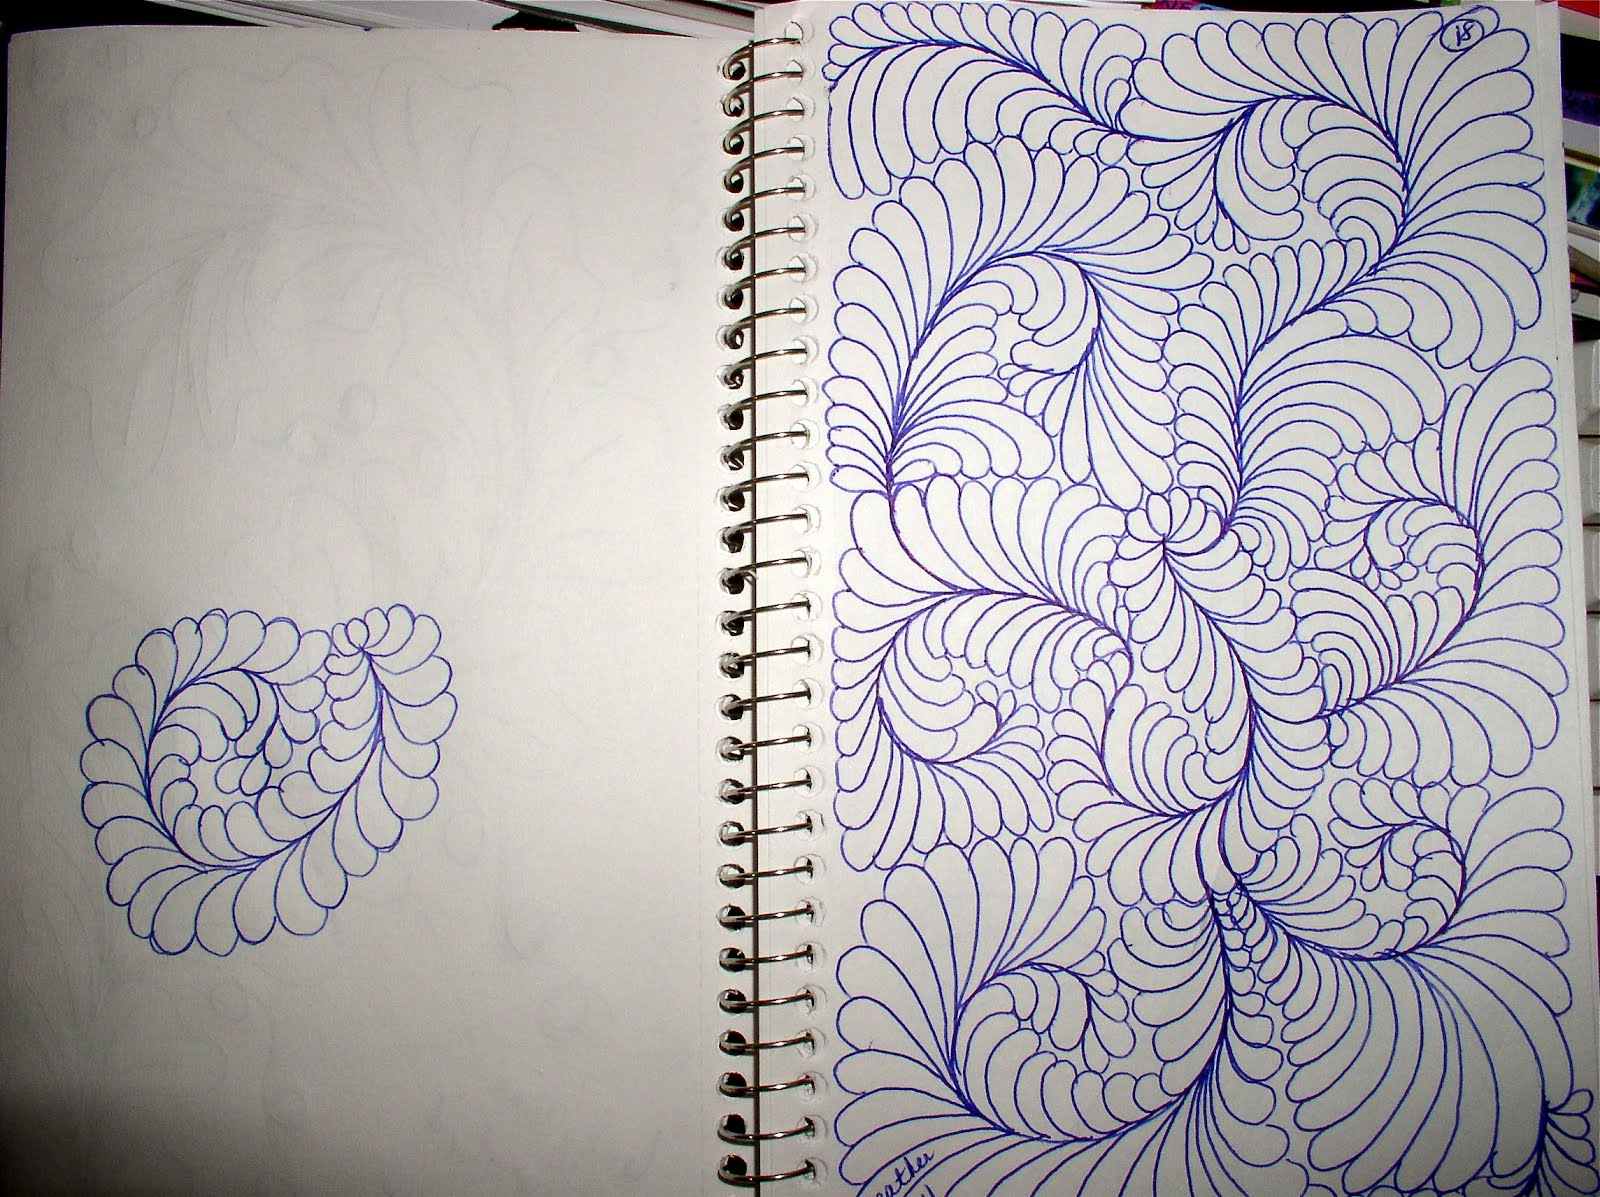 Cool Designs To Draw Easy On Paper